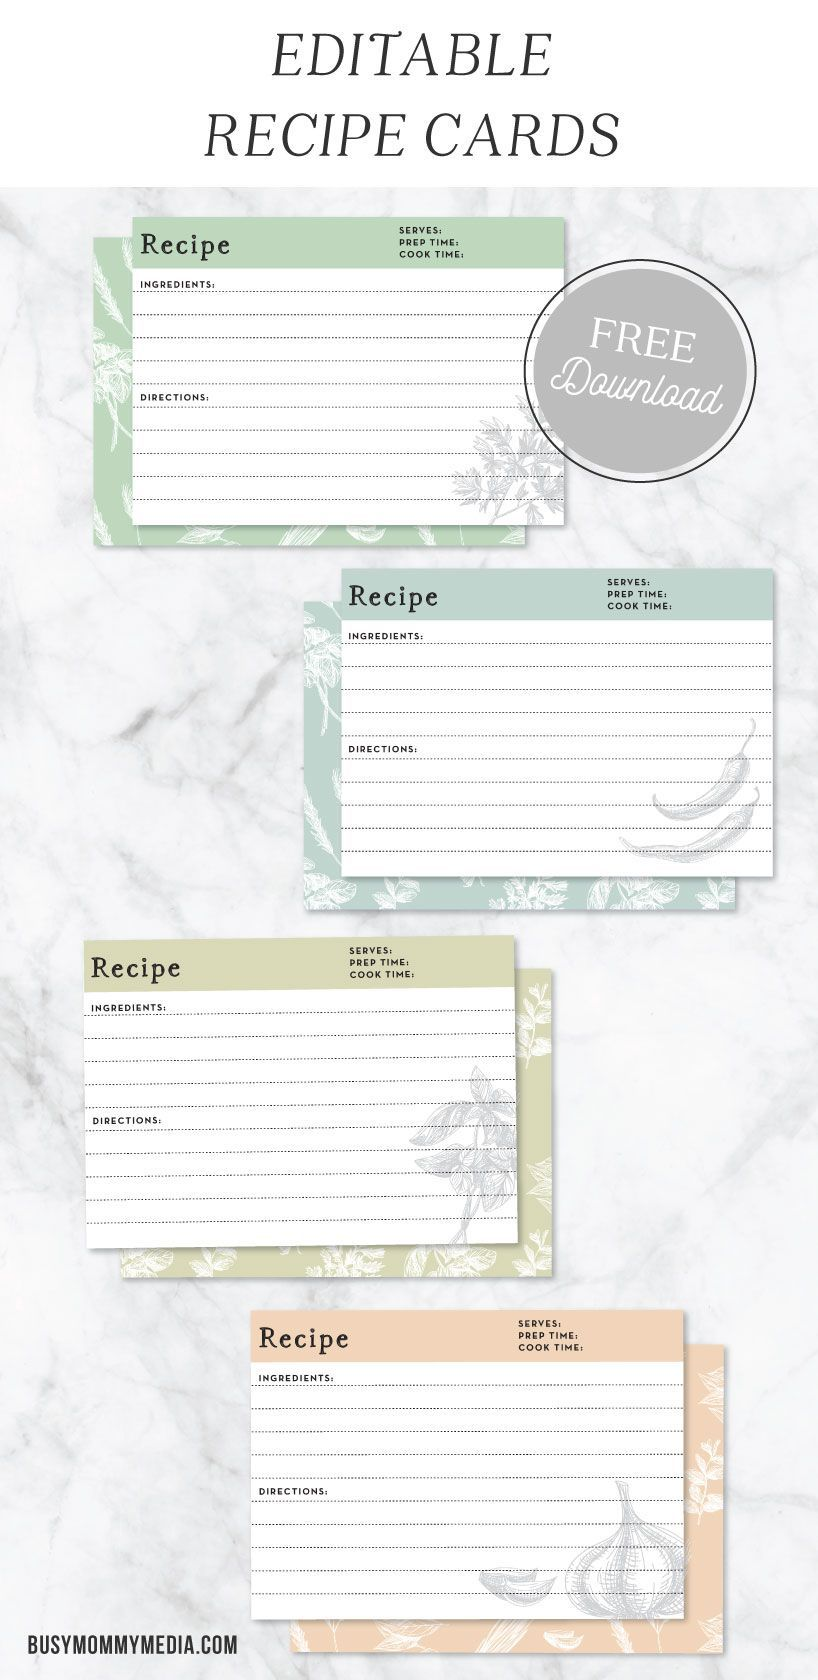 006 Imposing Editable Recipe Card Template Concept  Free For Microsoft Word 4x6 PageFull